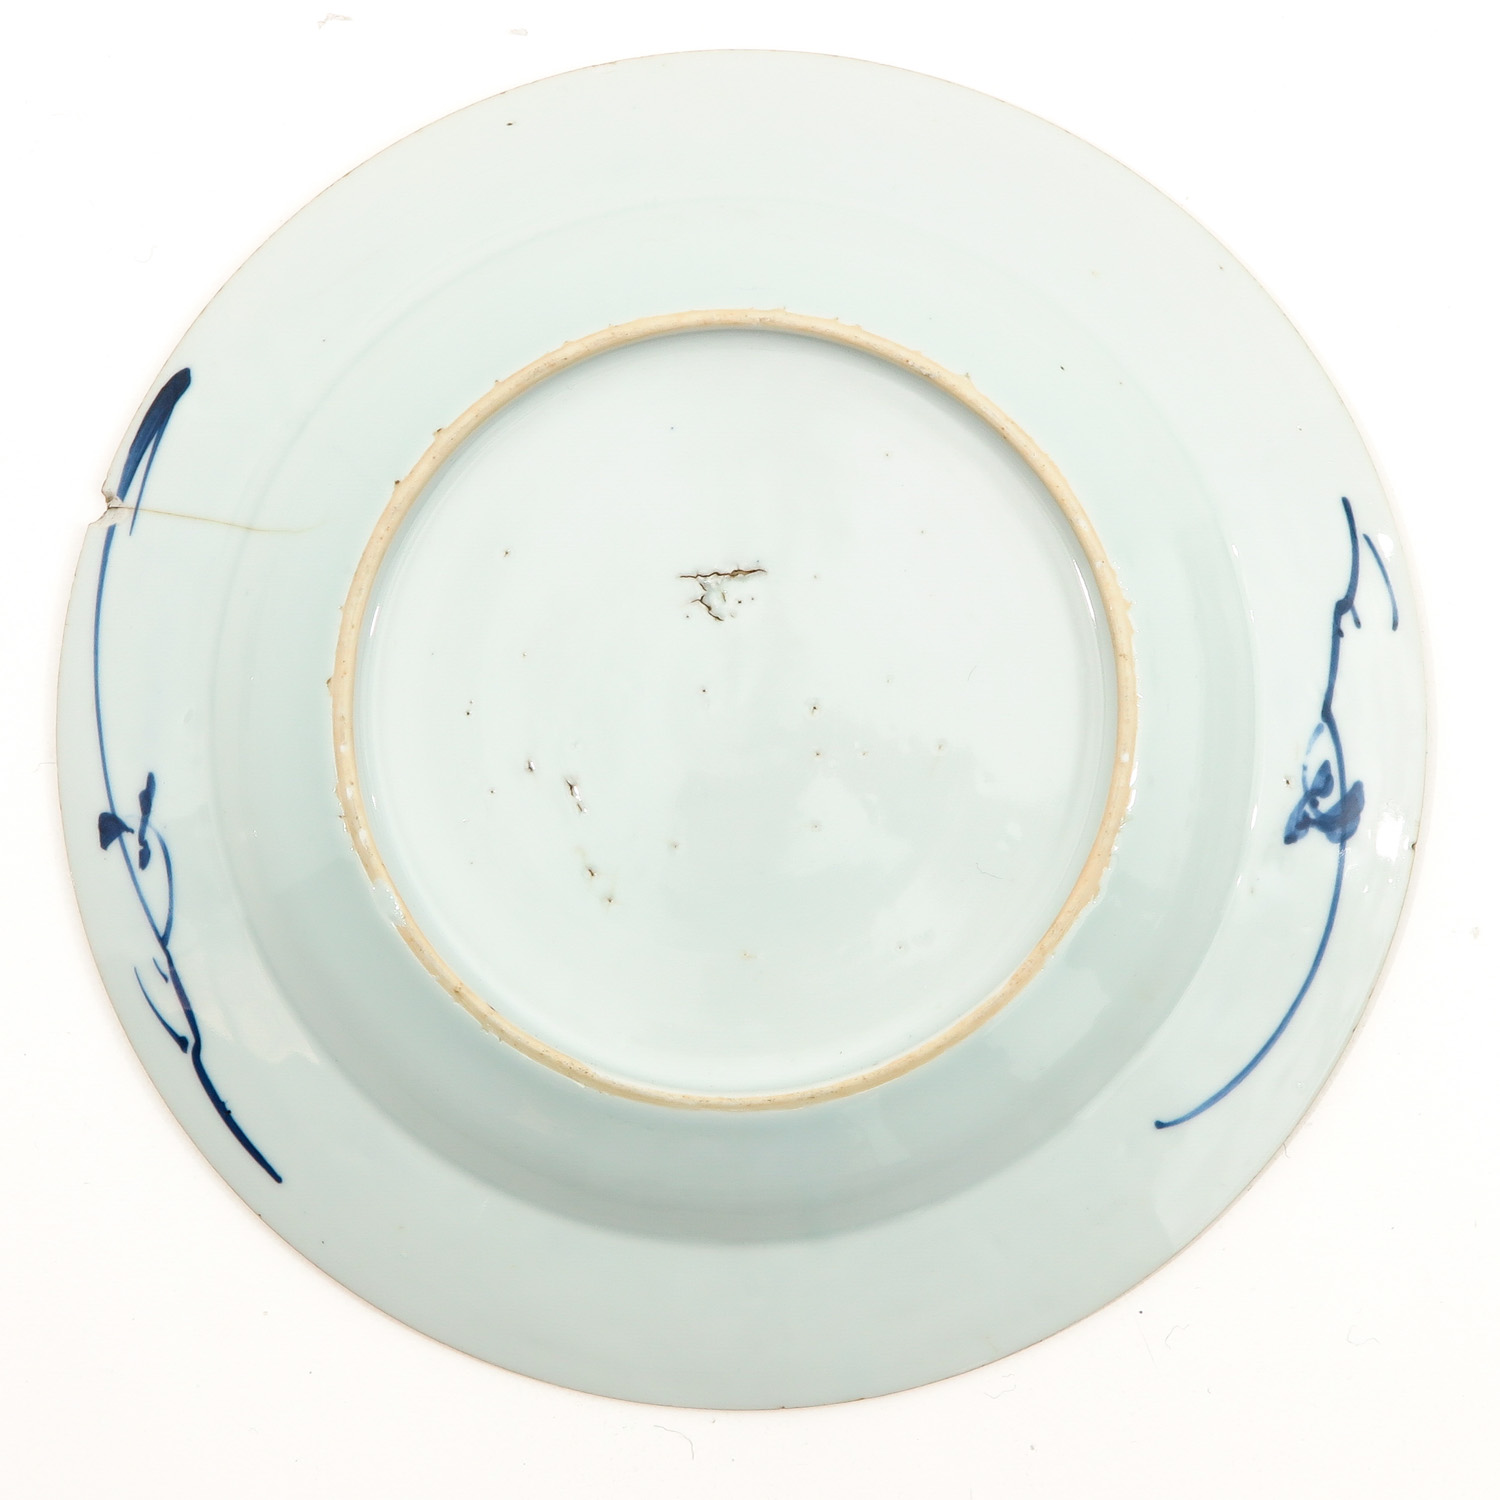 A Lot of 5 Blue and White Plates - Image 6 of 10